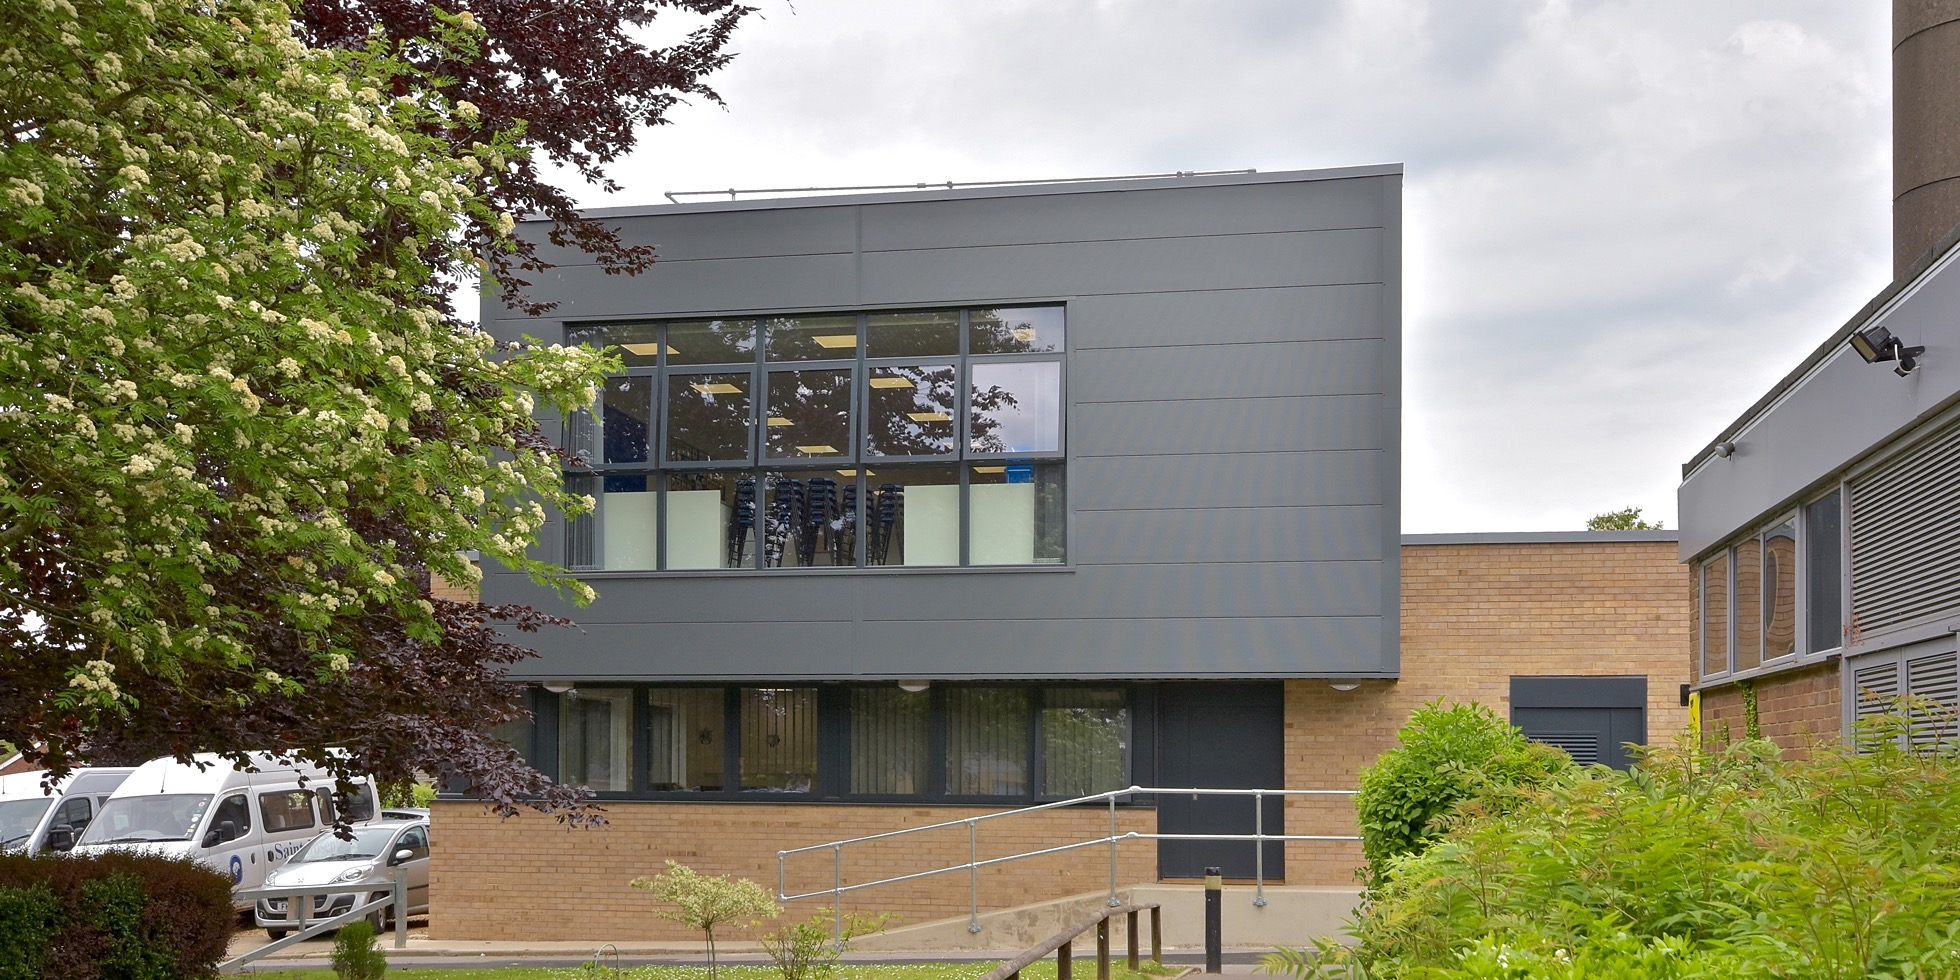 New Design Technology building opens at St Joseph's Catholic School, Laverstock